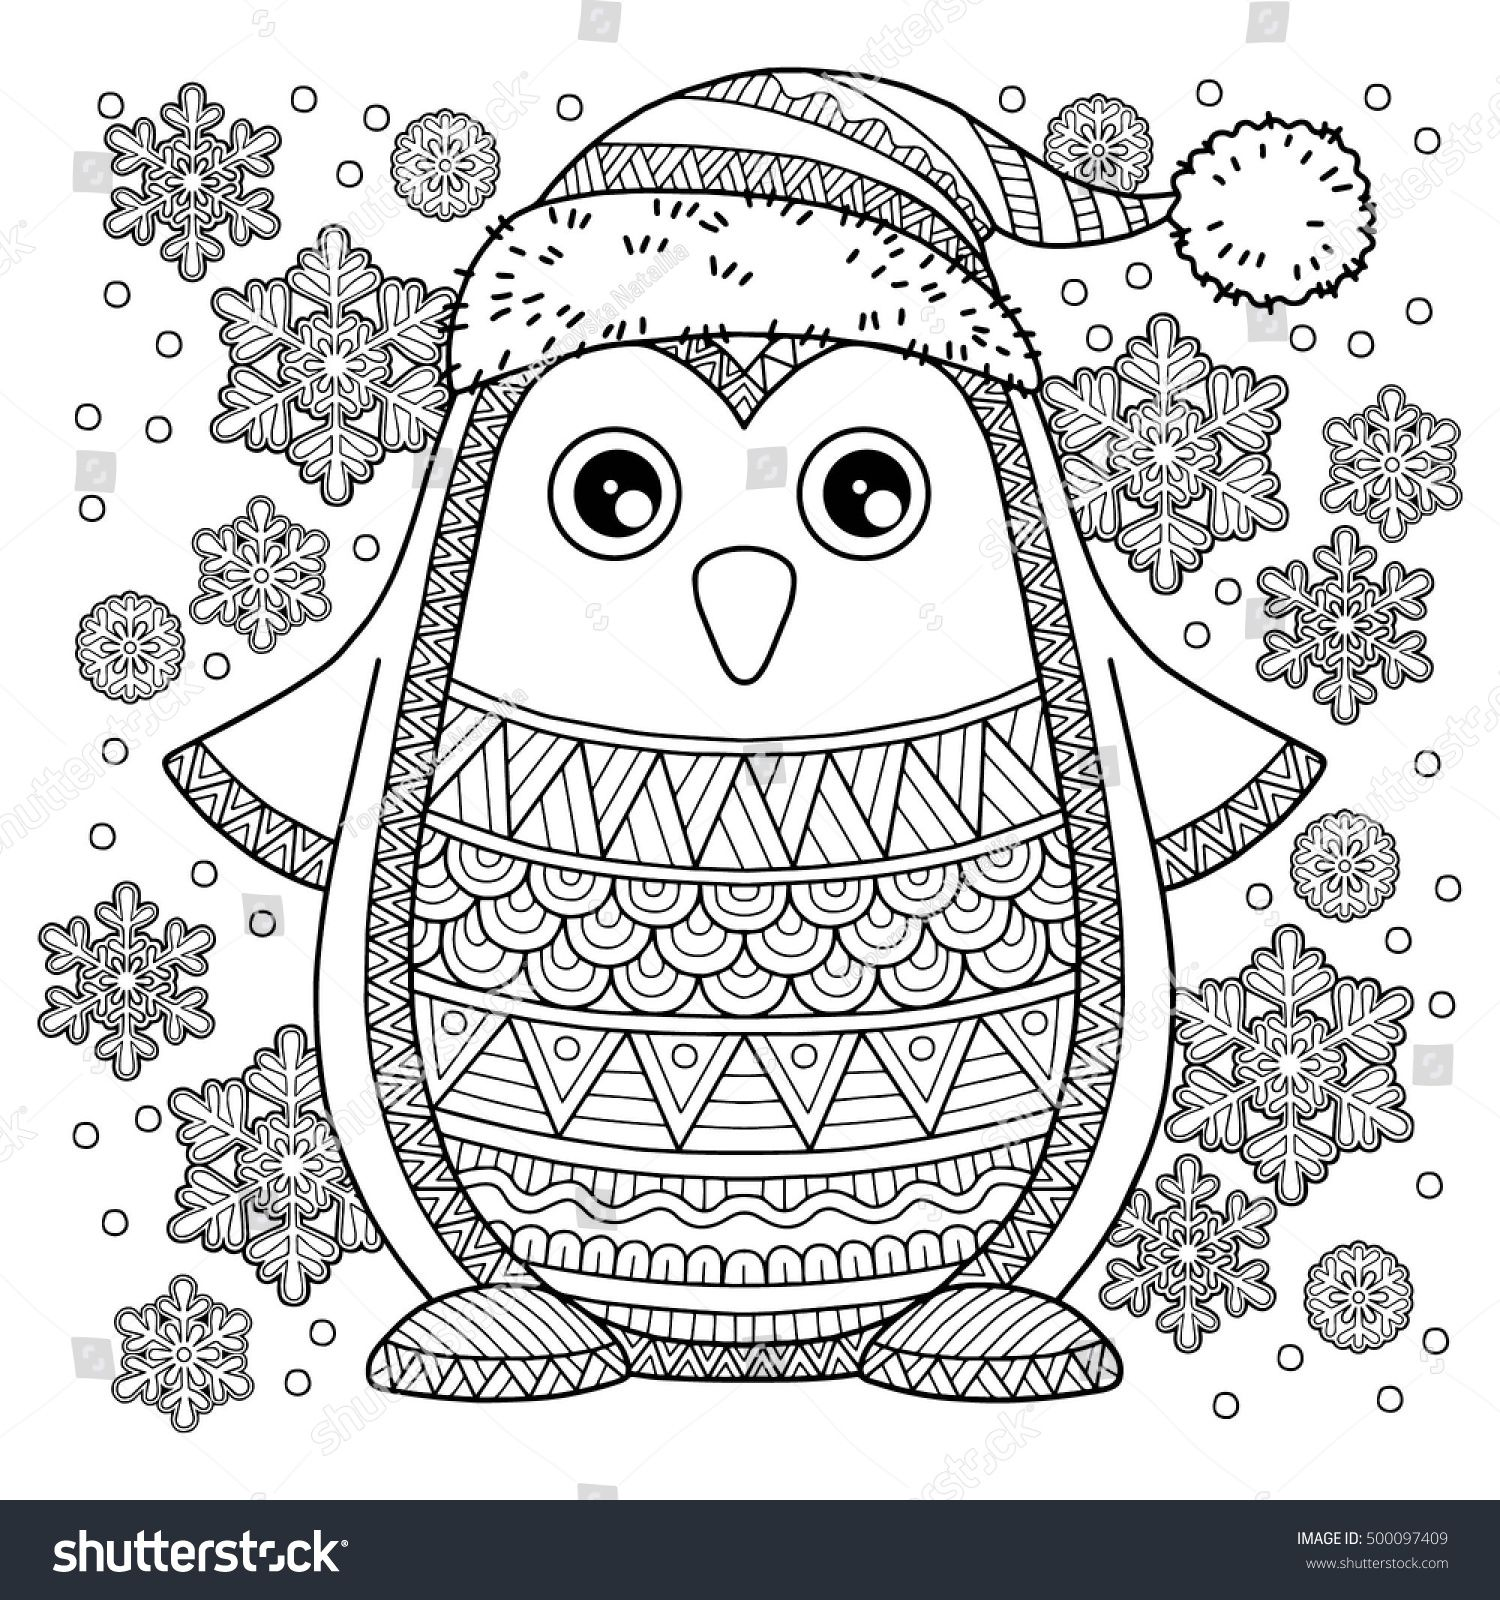 Merry Christmas Jolly Penguin The Detailed Coloring Pages For Adults Image For Design G Detailed Coloring Pages Penguin Coloring Pages Coloring Pages Winter